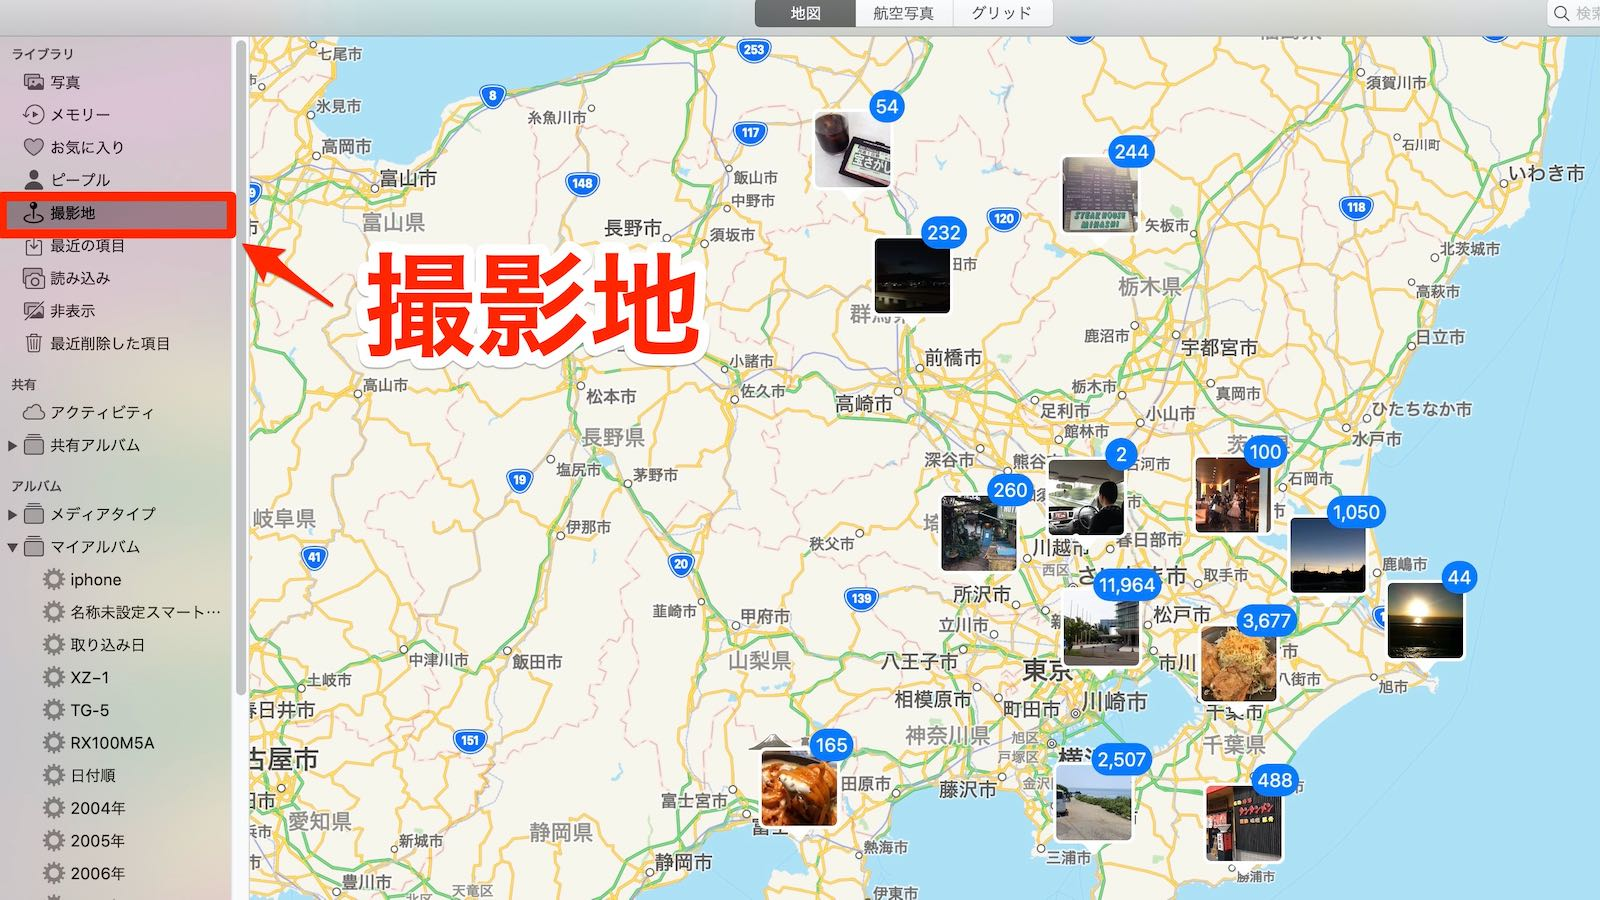 0221 Search images captured on your iPhone or Mac in one shot 04